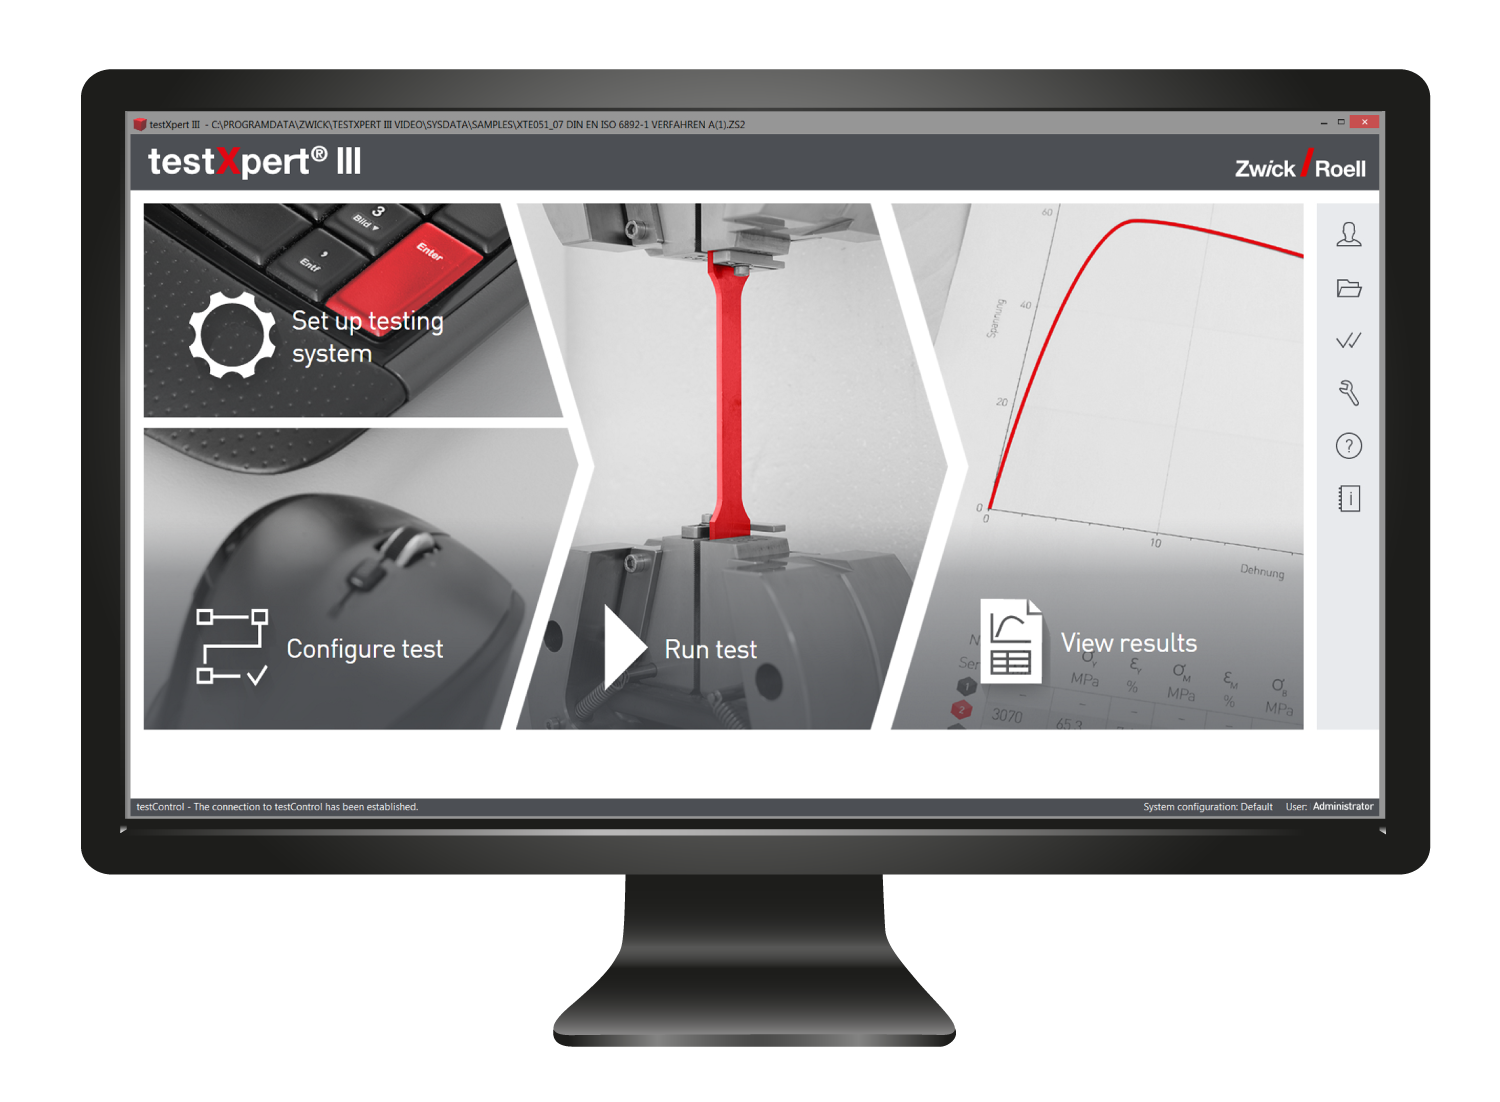 TestXpert III user interface is designed to be simple and intuitive